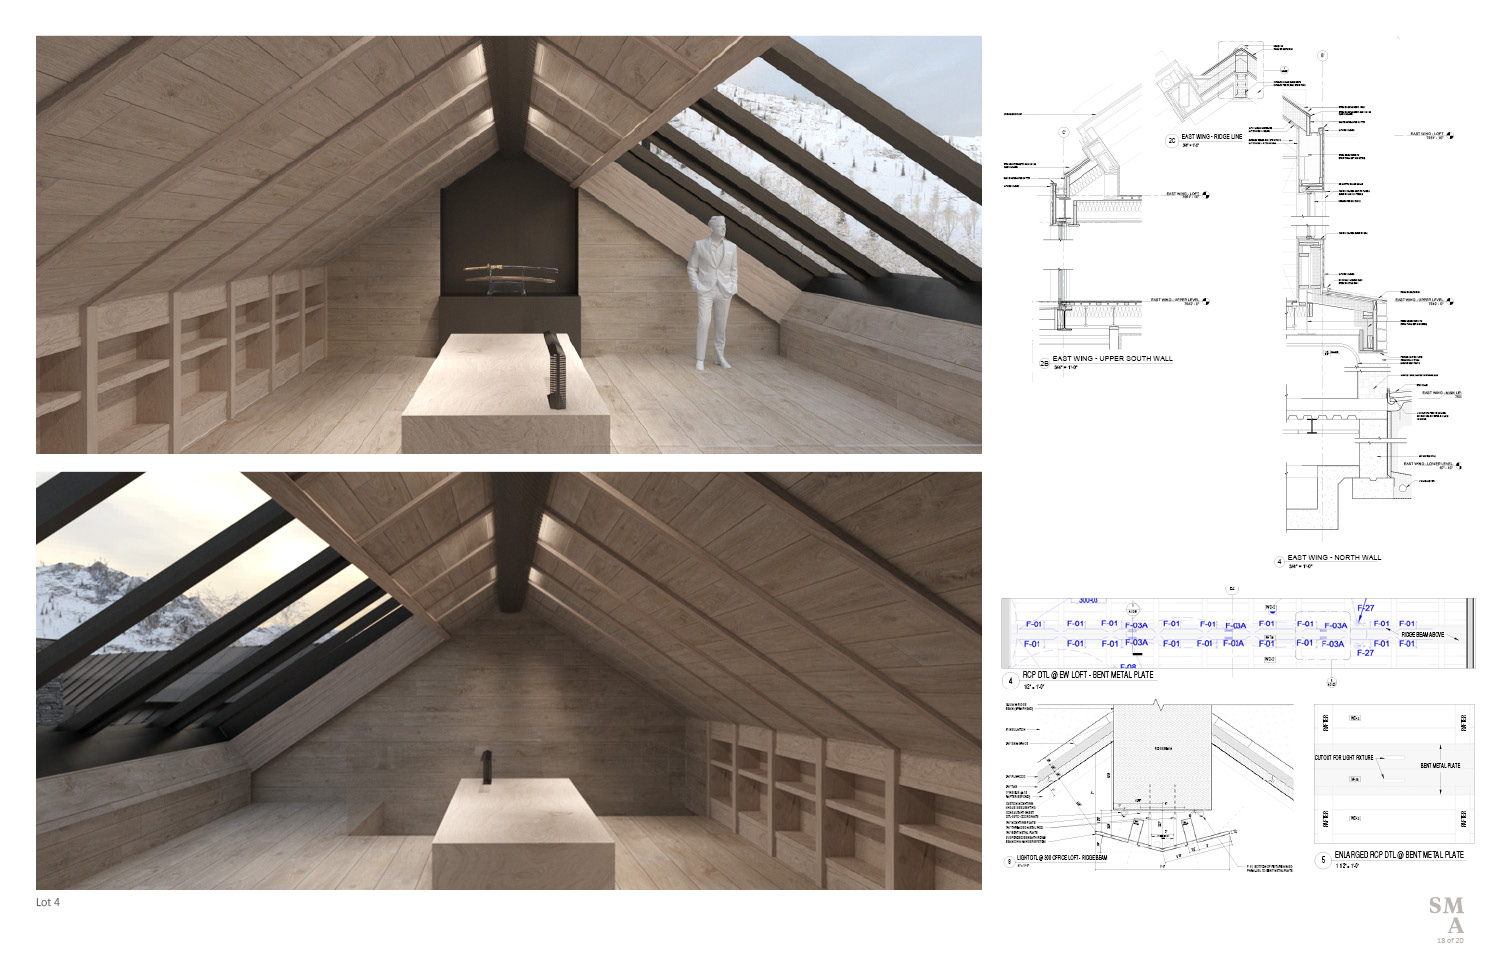 Lot 4 - Office Loft: an intimate office space with an operable skylight. SMA Design Team & Consultants}